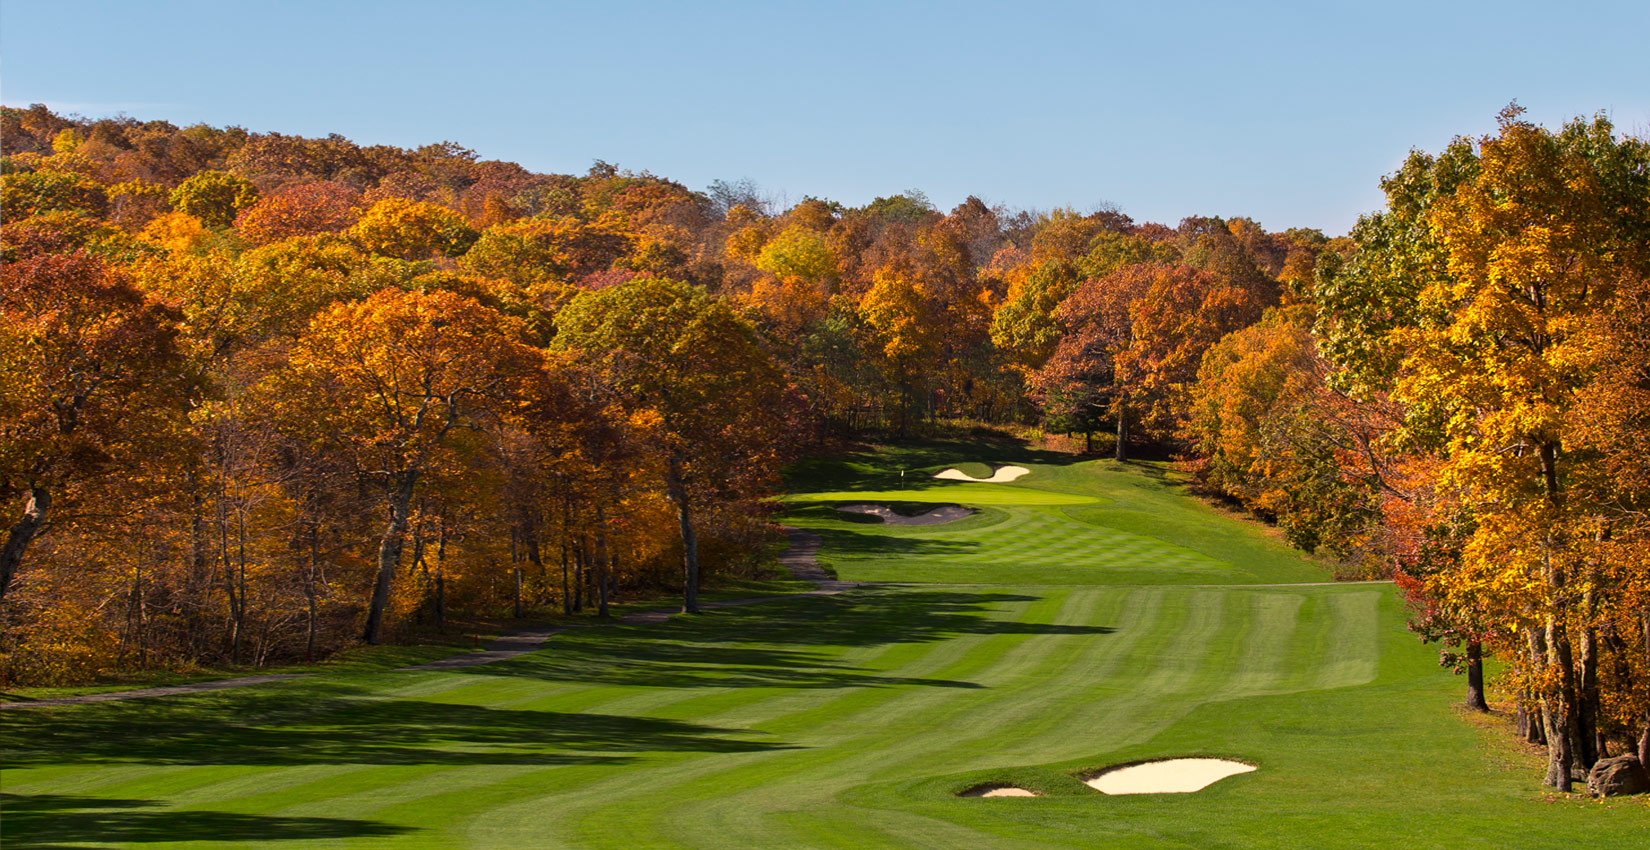 virginia's highest golf course is Devils Knob at wintergreen resort